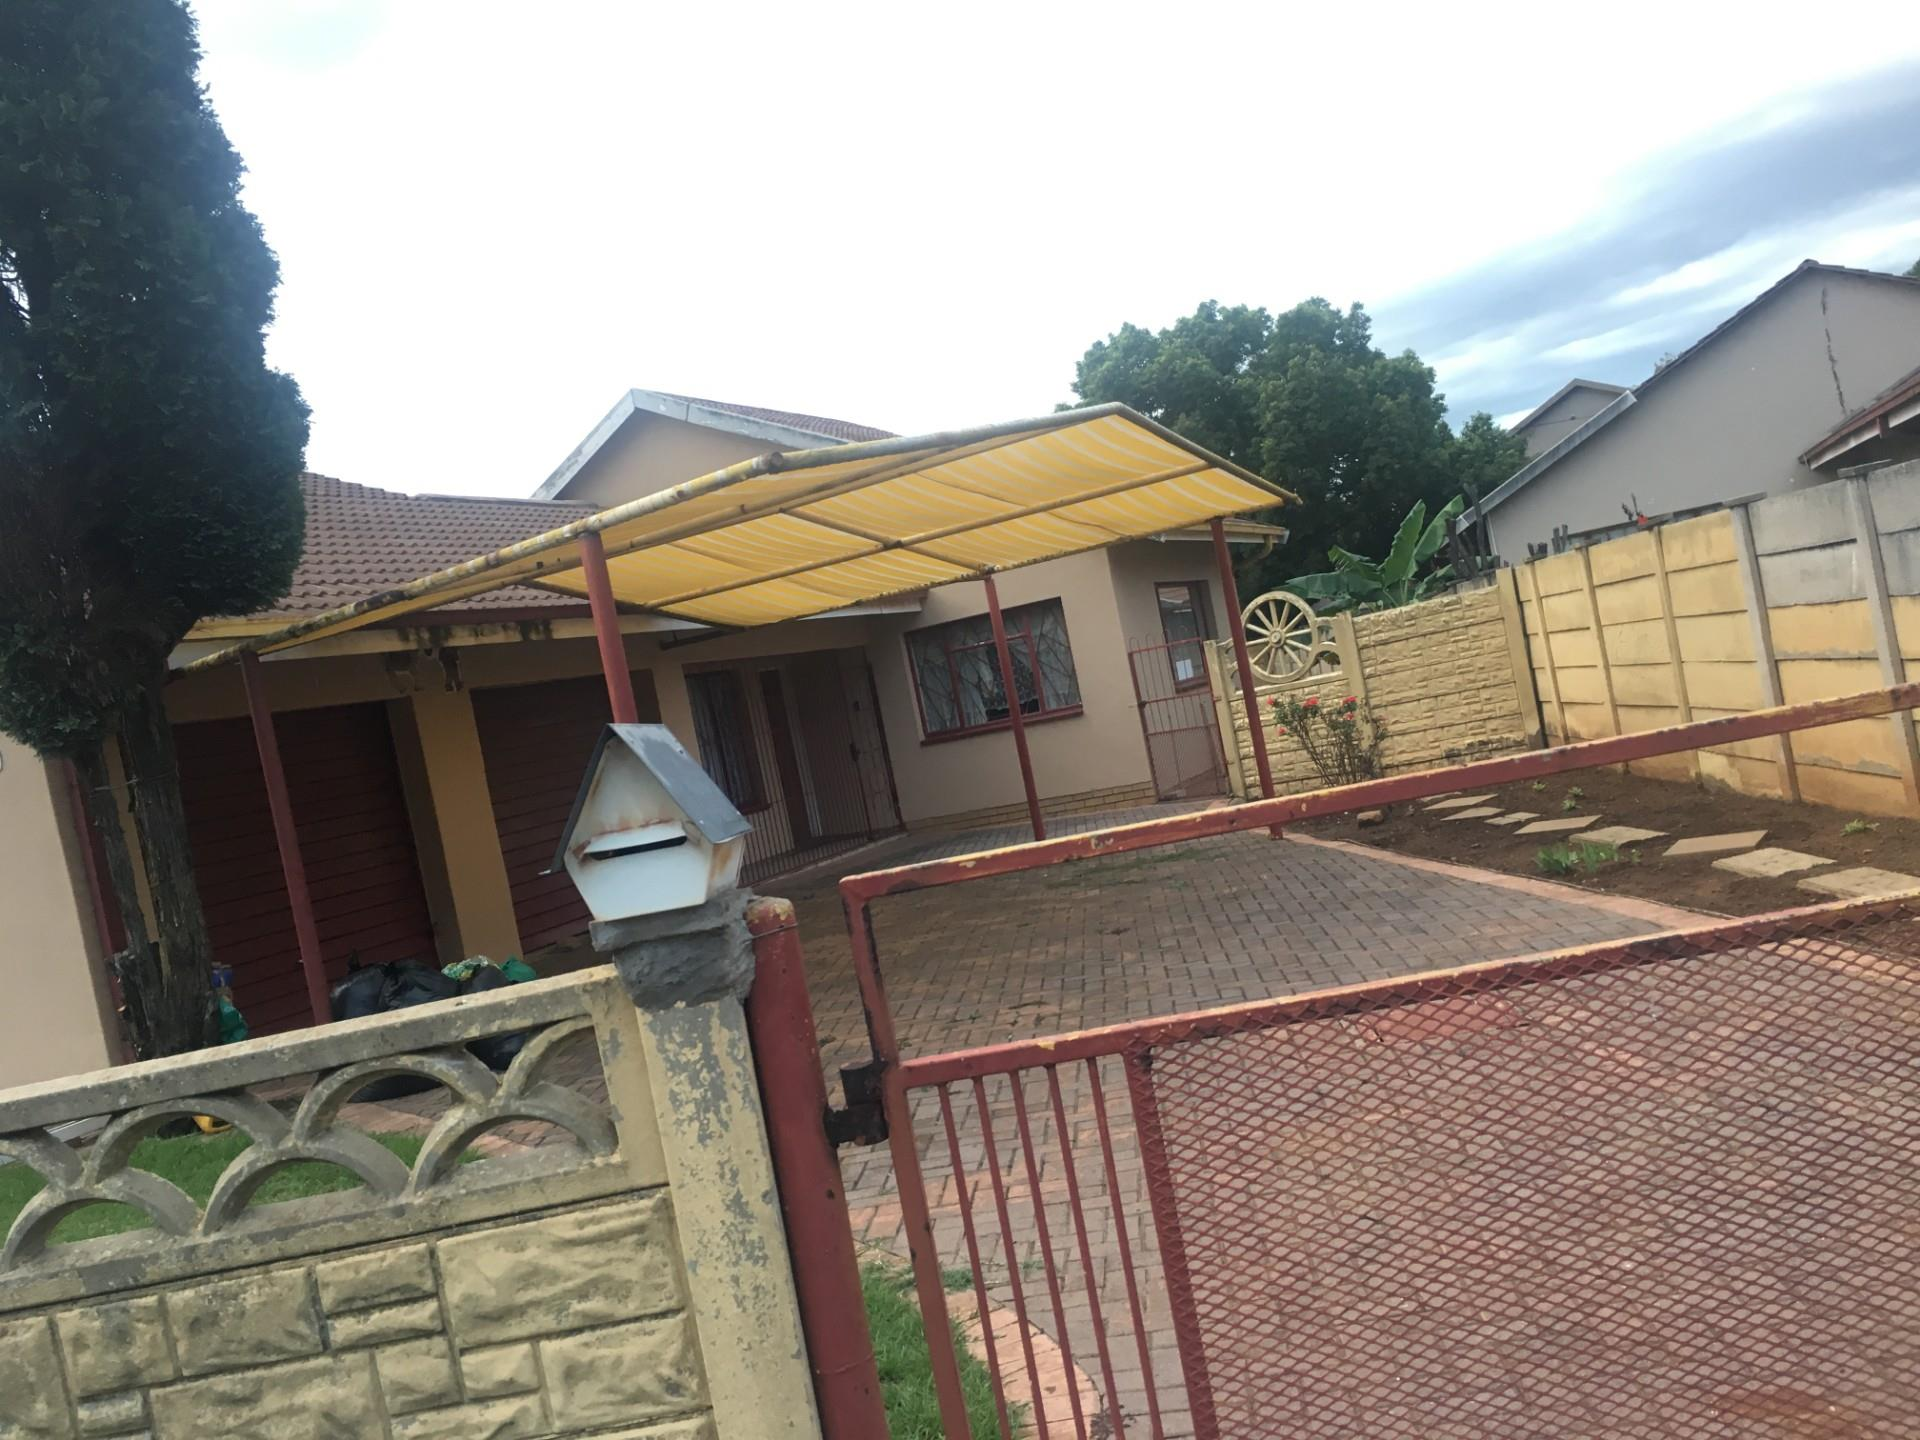 4 Bedroom House For Sale in Unitas Park